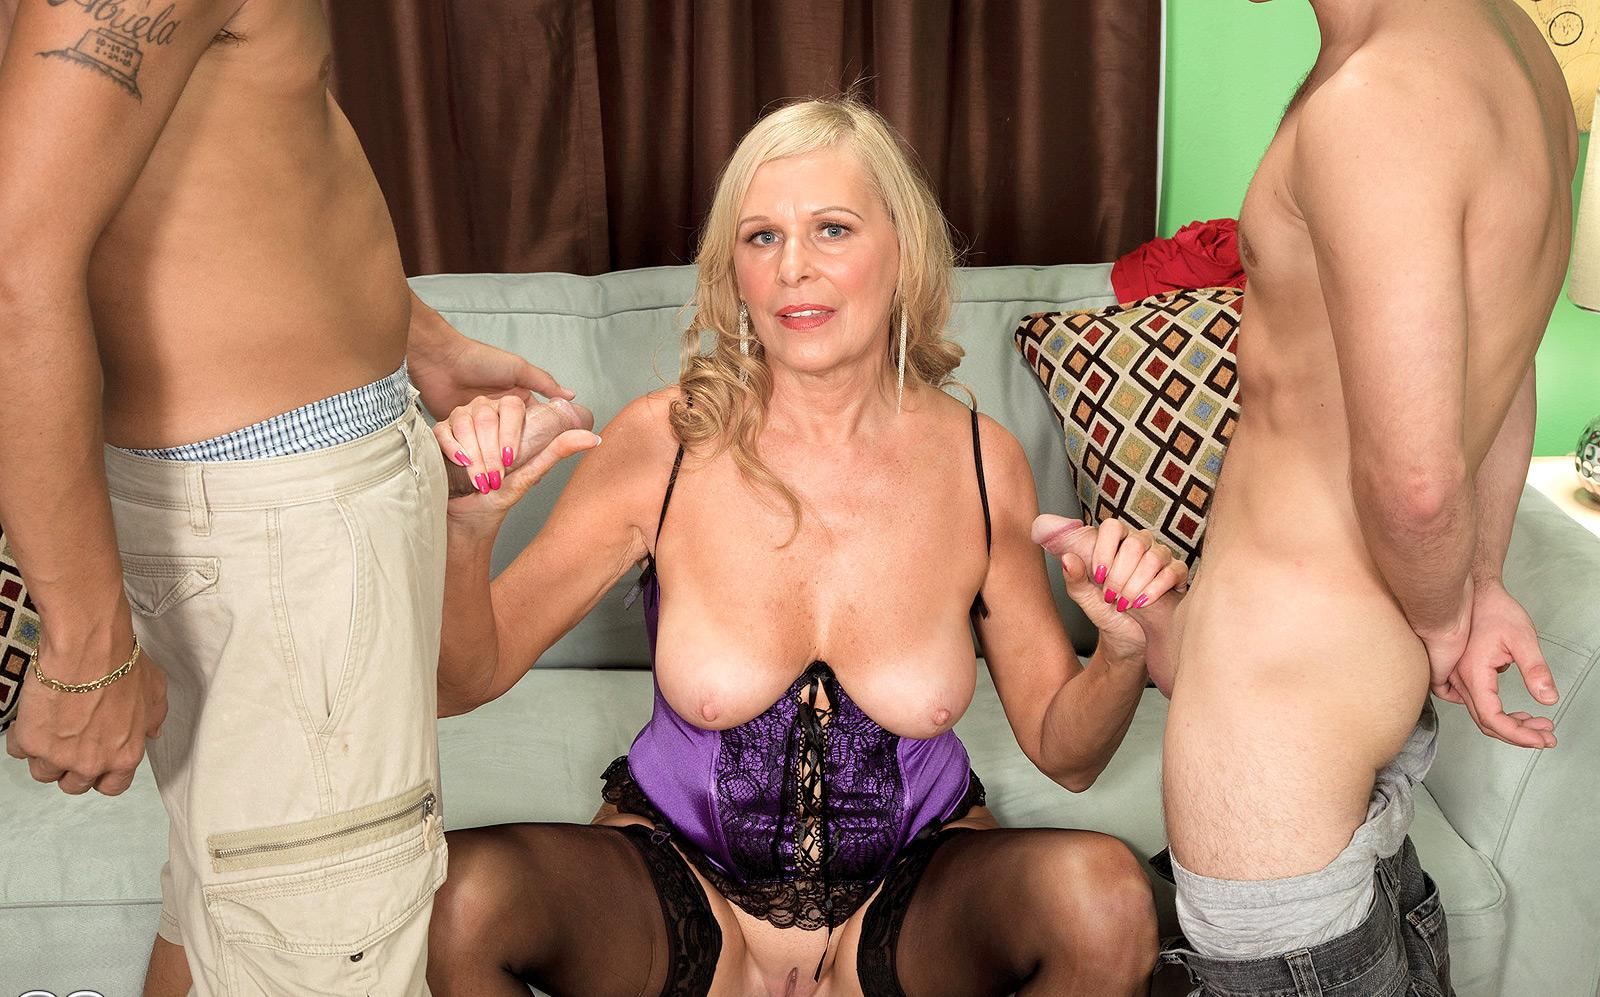 wet granny has a strong passion deepthroating with great passion